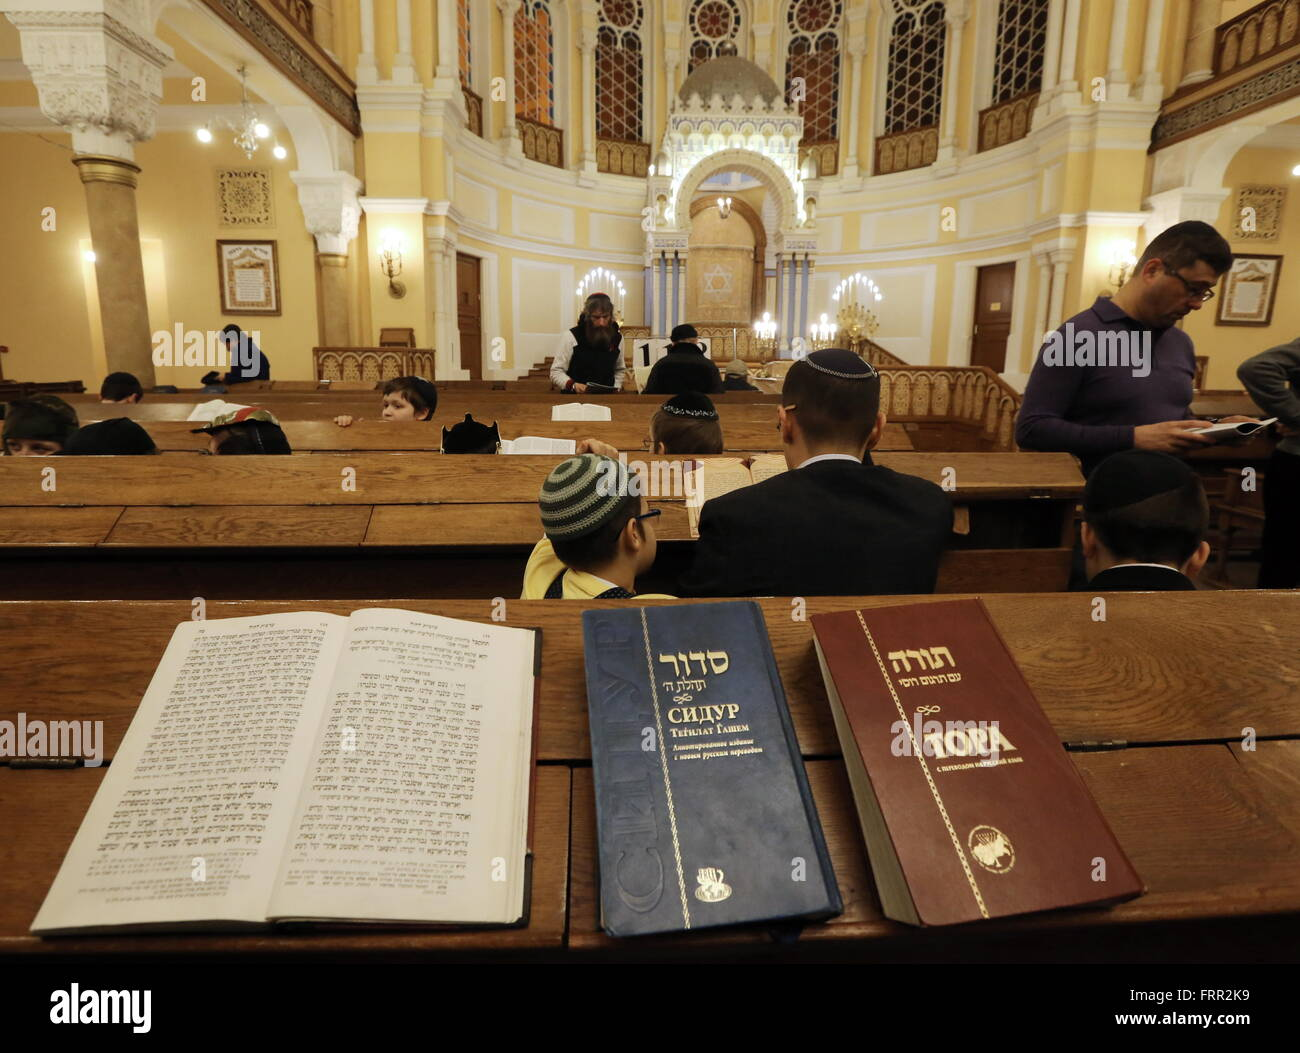 ST PETERSBURG, RUSSIA. MARCH 23, 2016. Jews reading during the festival of Purim at St Petersburg's Grand Choral - Stock Image